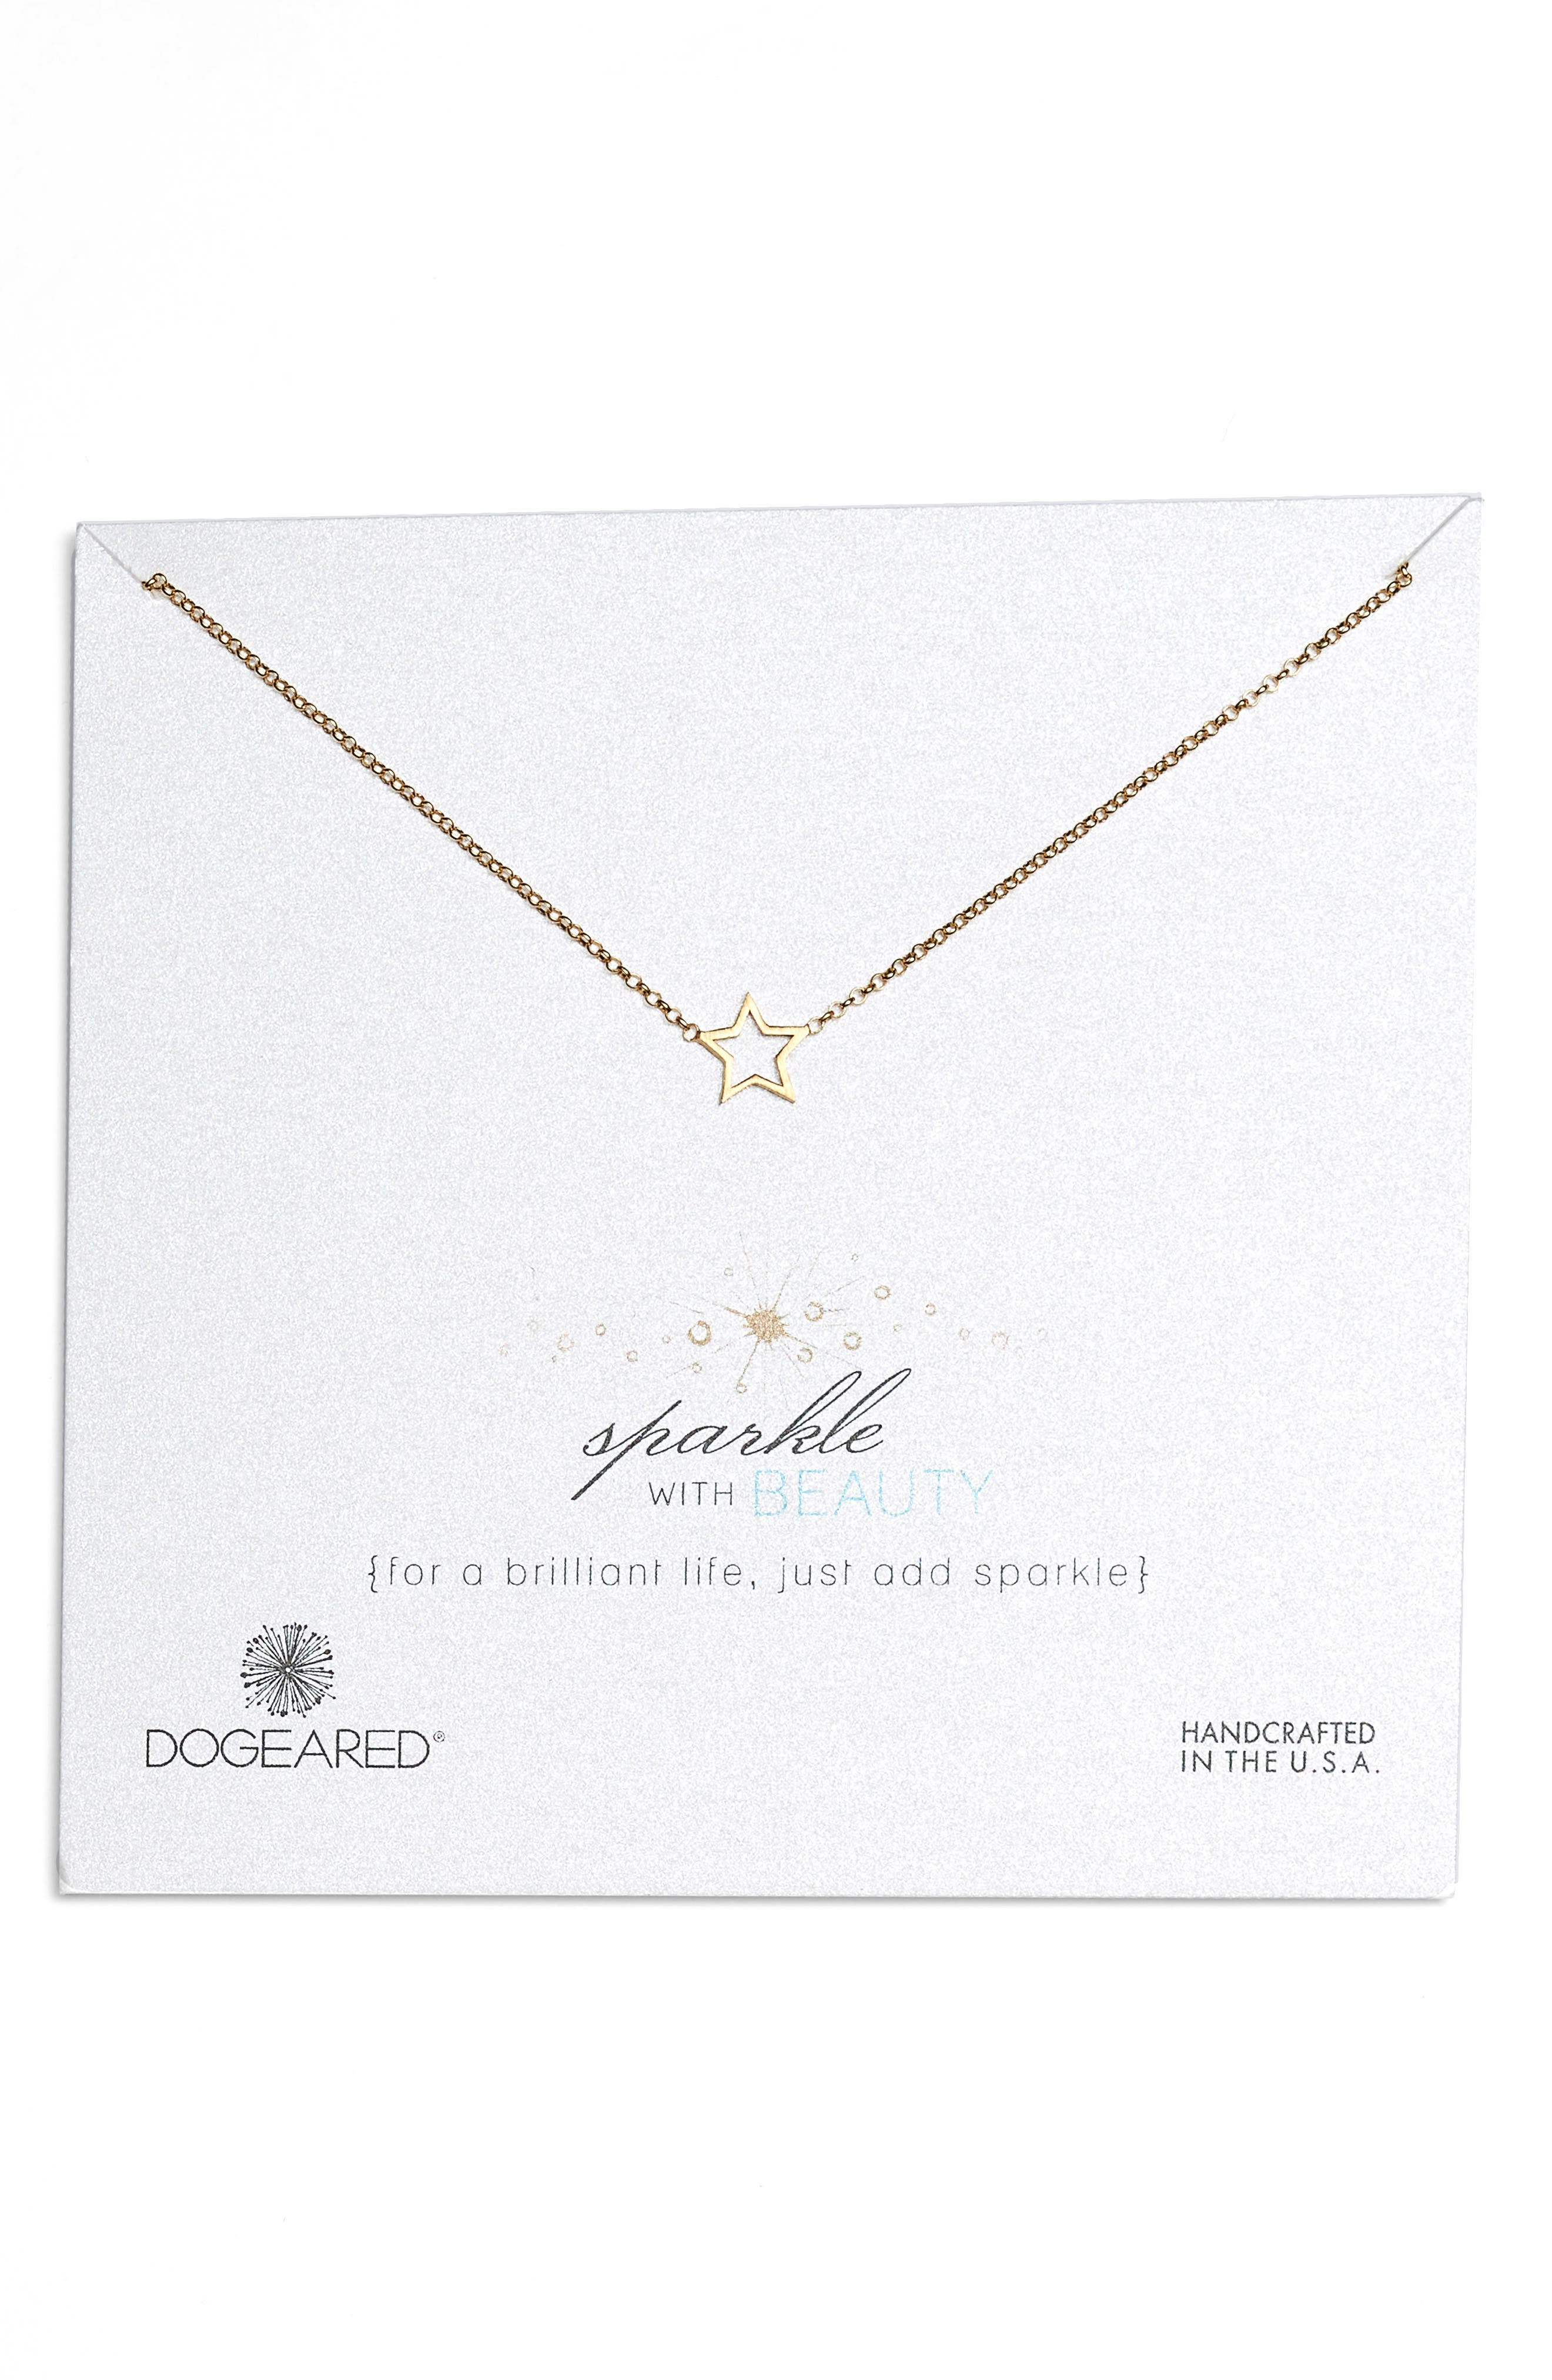 Sparkle with Beauty Necklace,                         Main,                         color, 710